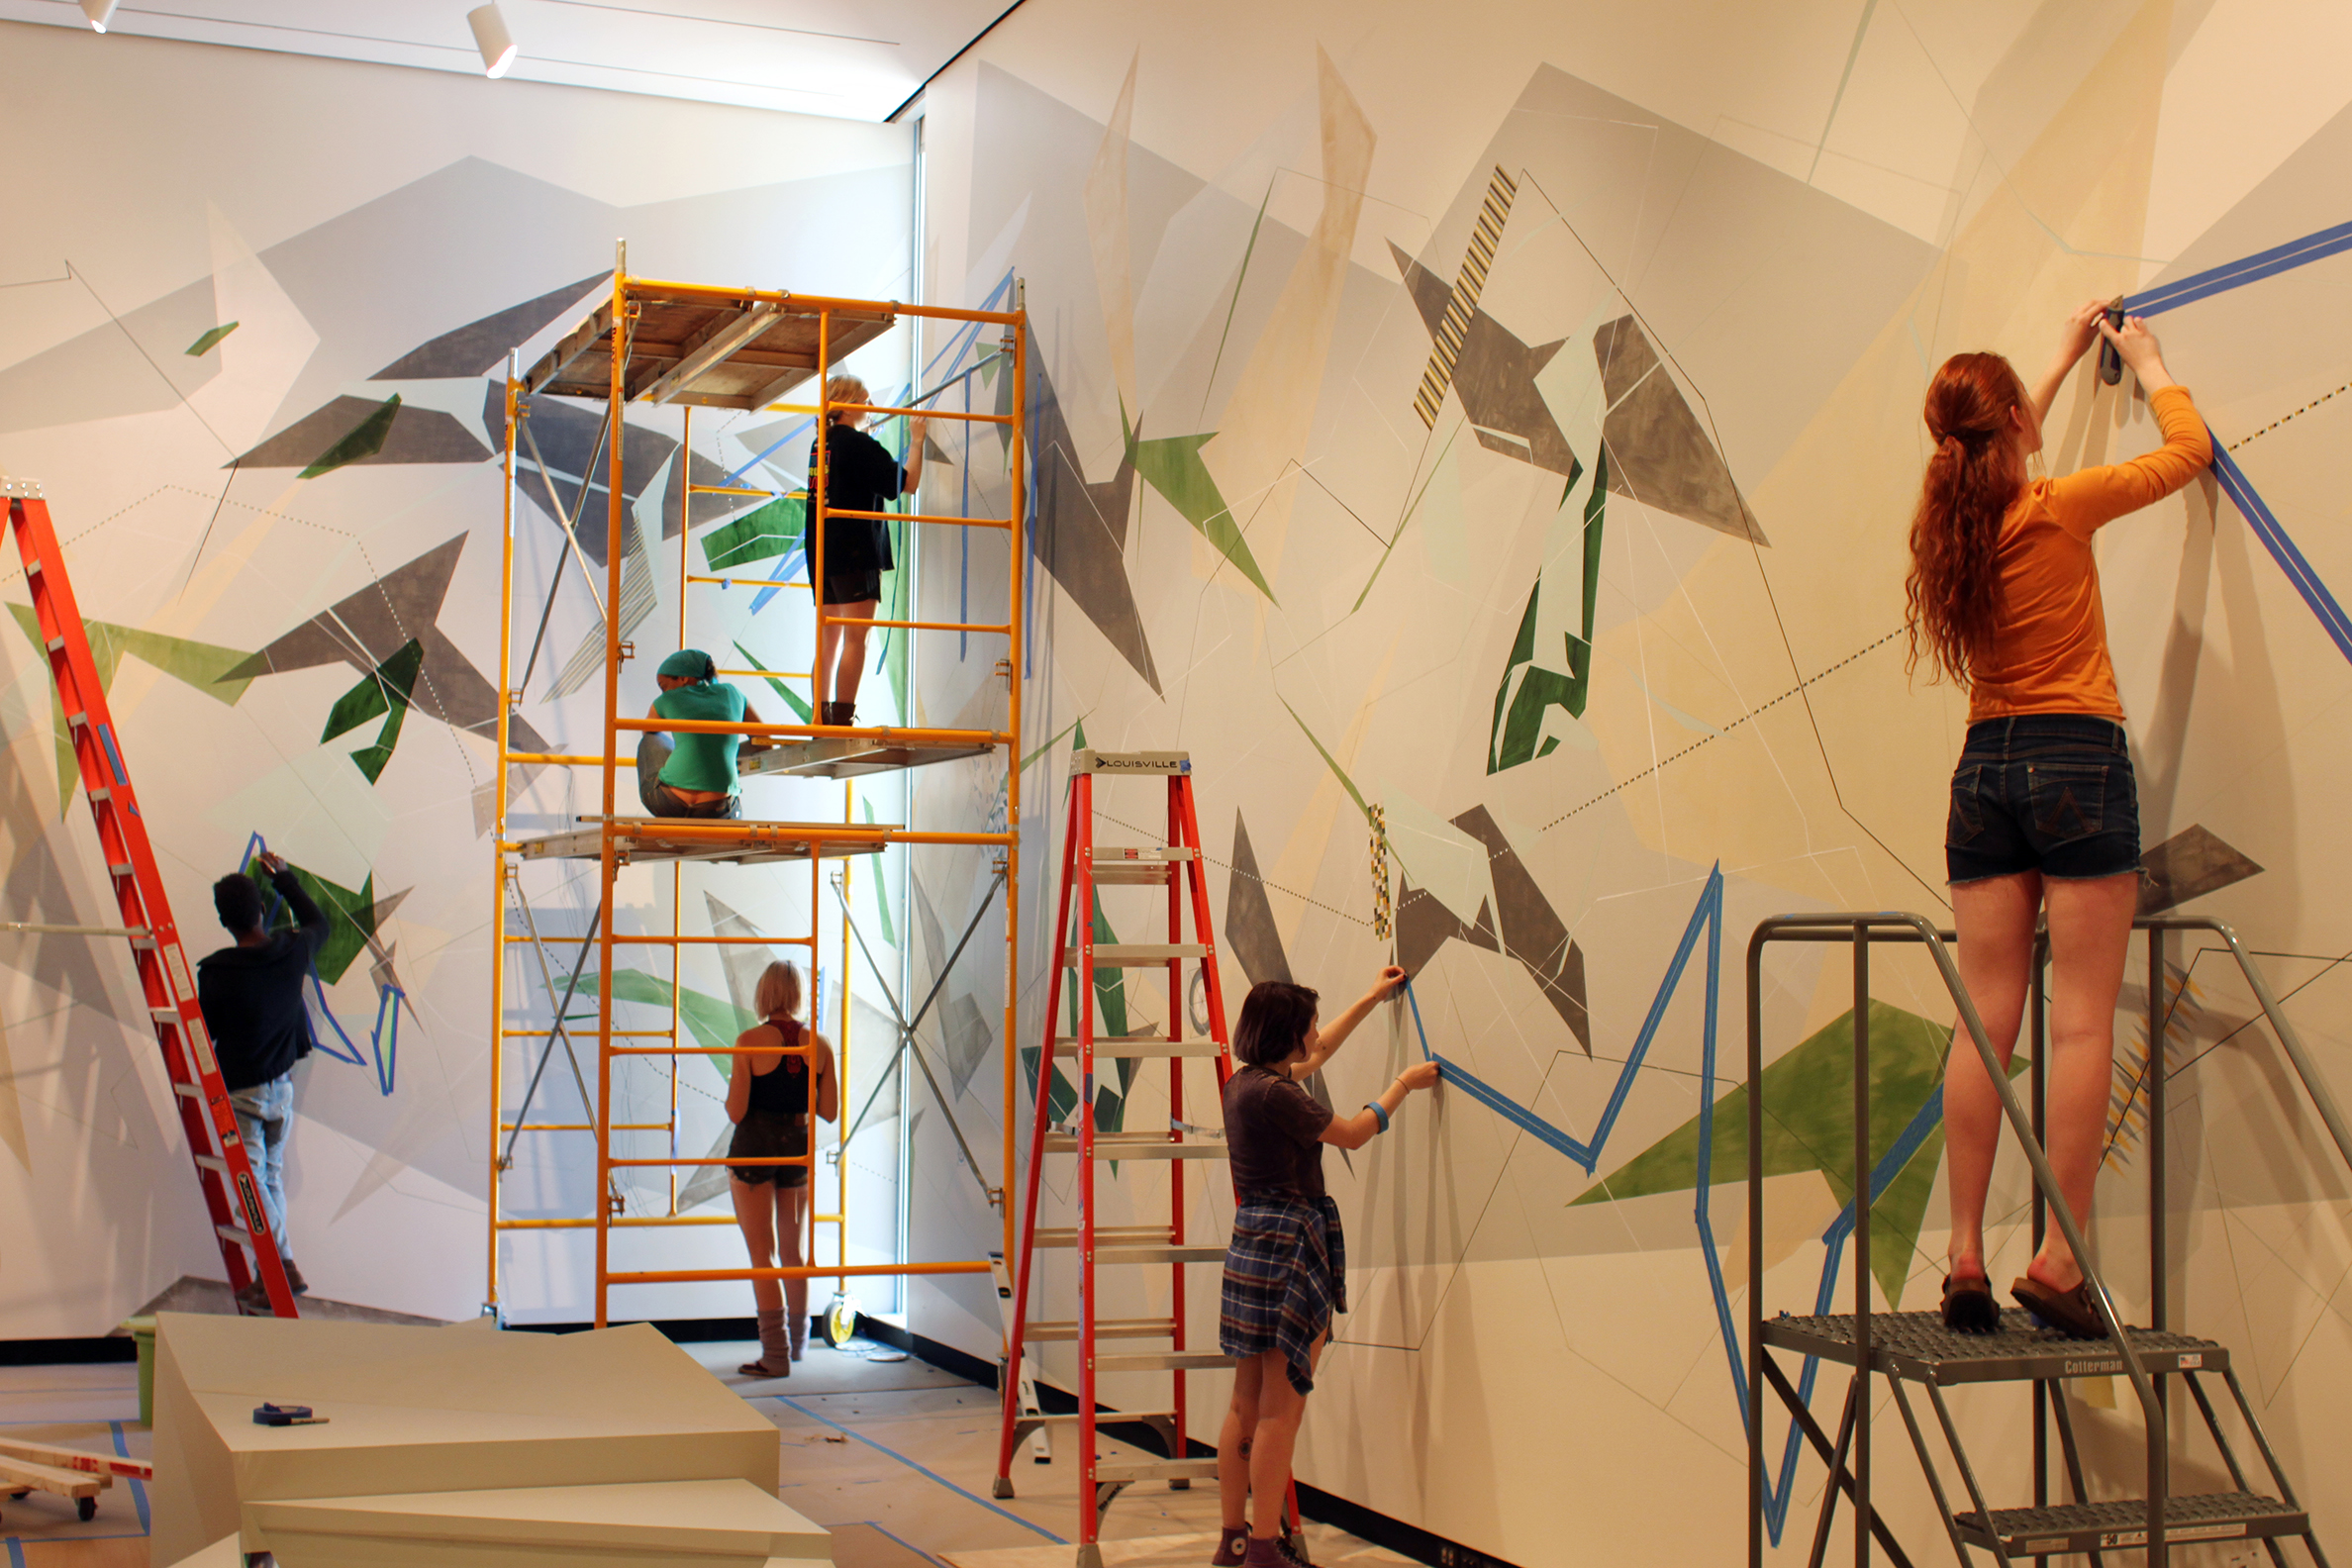 Students help artist Danielle Tegeder complete a 70-foot wall drawing in the Wellin Museum of Art.